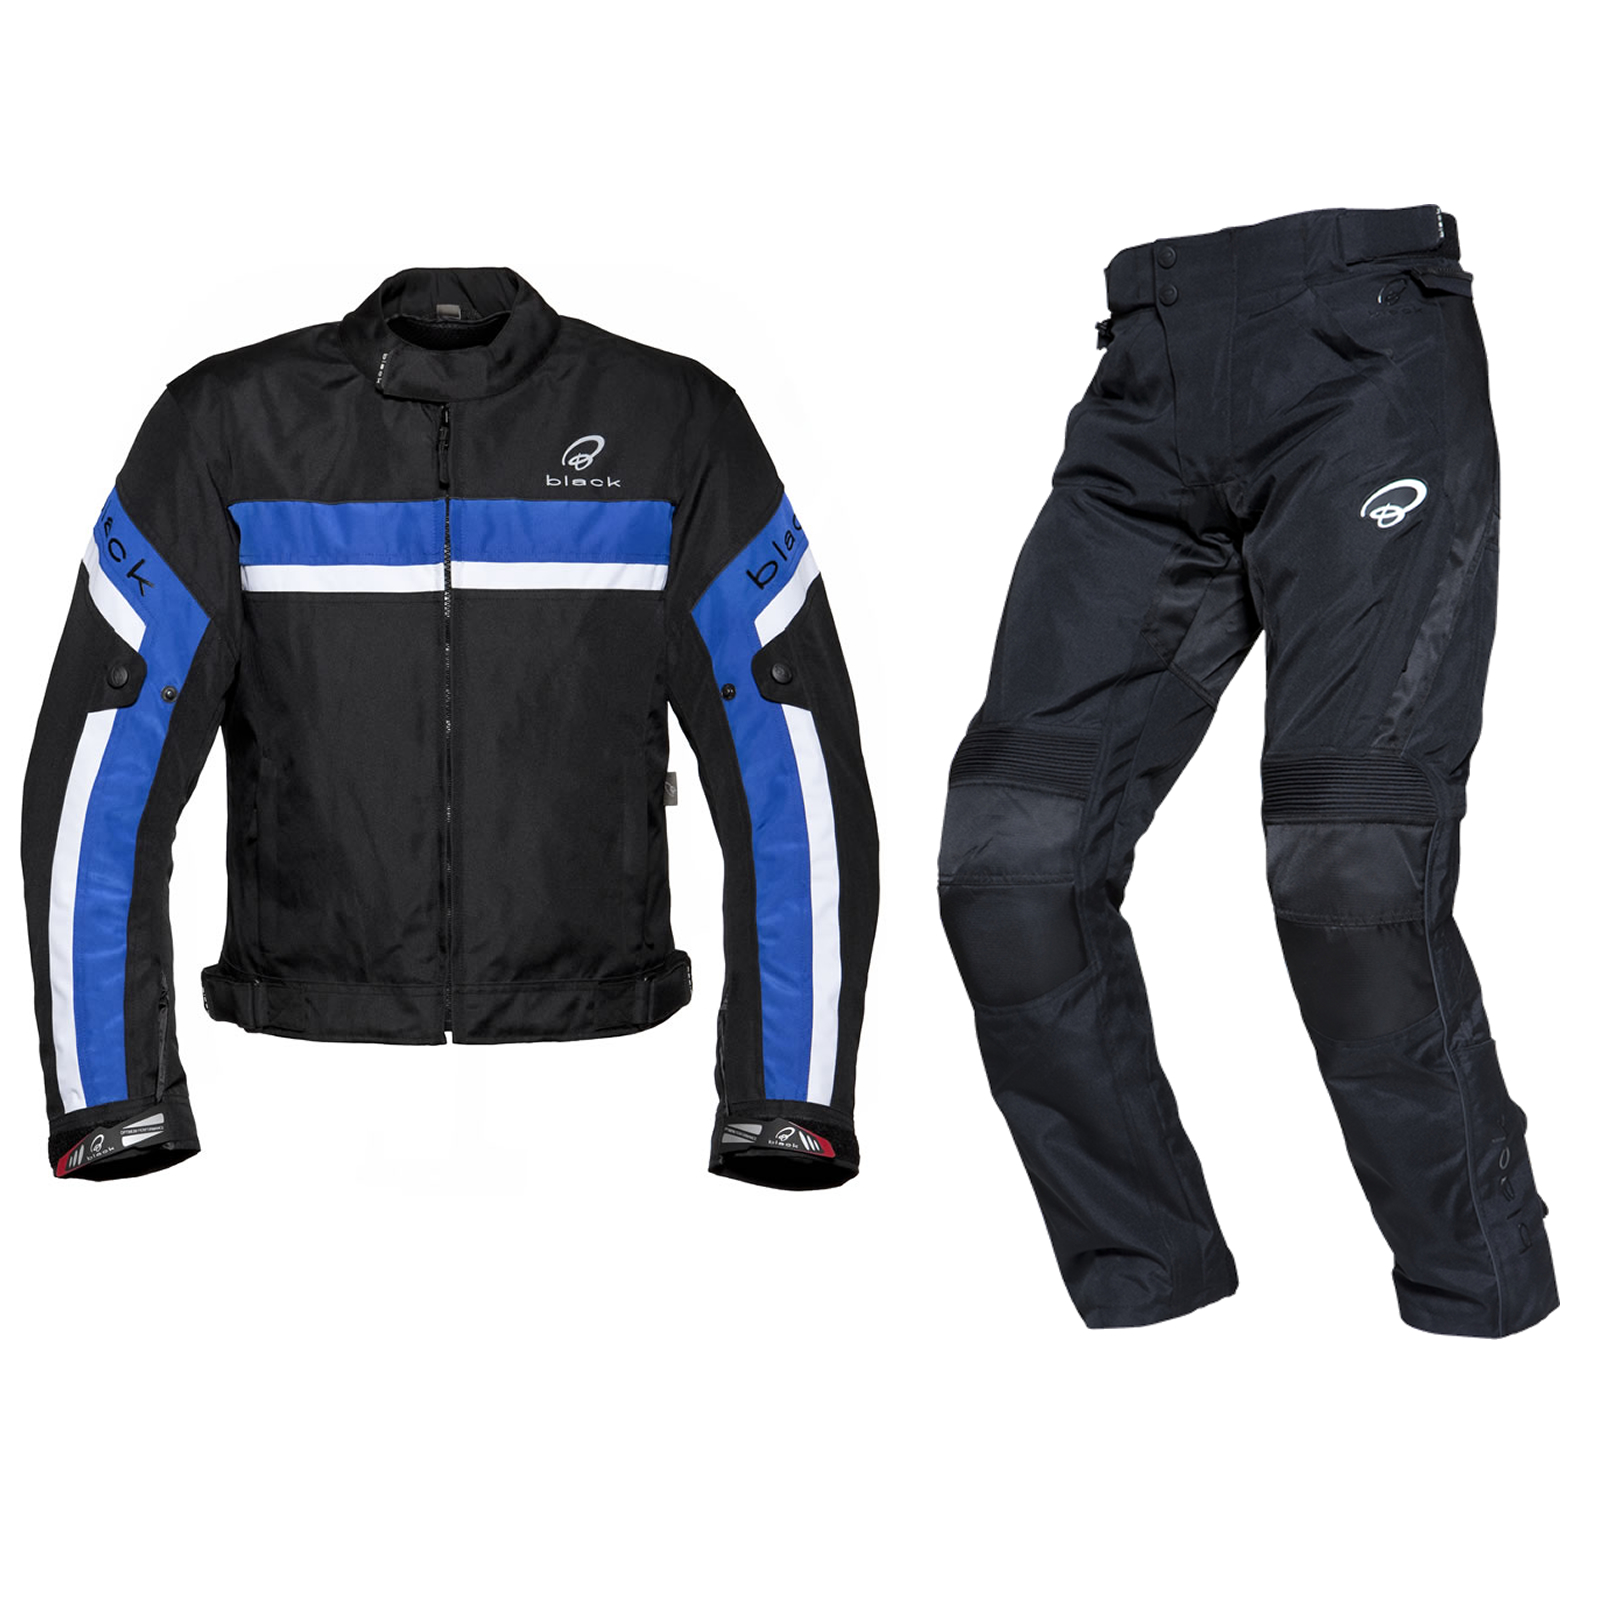 black argon evo blouson bleu et atom pantalon moto scooter motard tanche route ebay. Black Bedroom Furniture Sets. Home Design Ideas